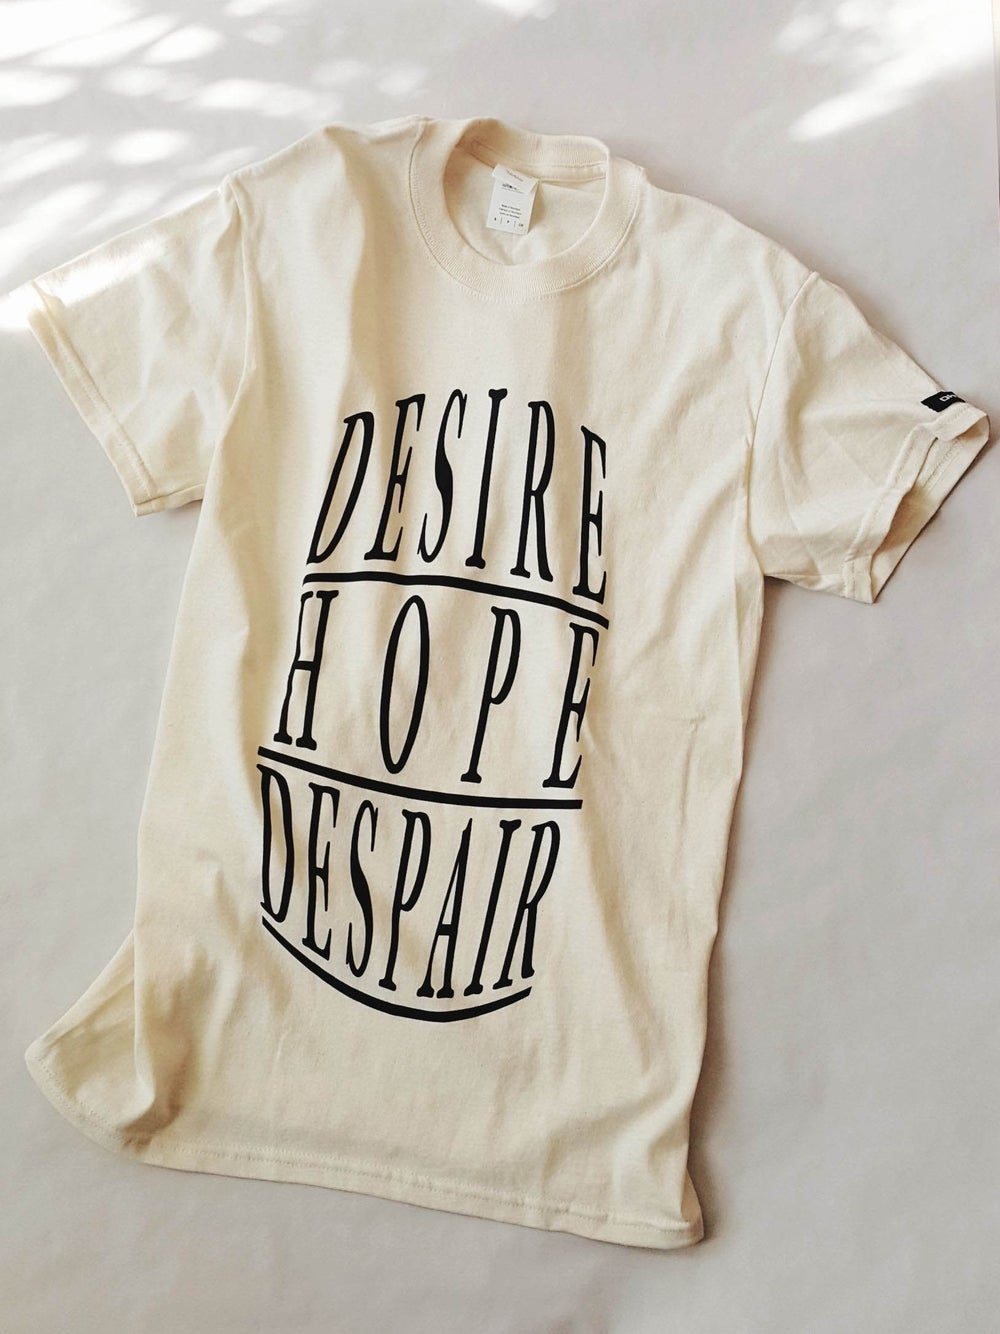 DESIRE HOPE DESPAIR short sleeve | 3XL